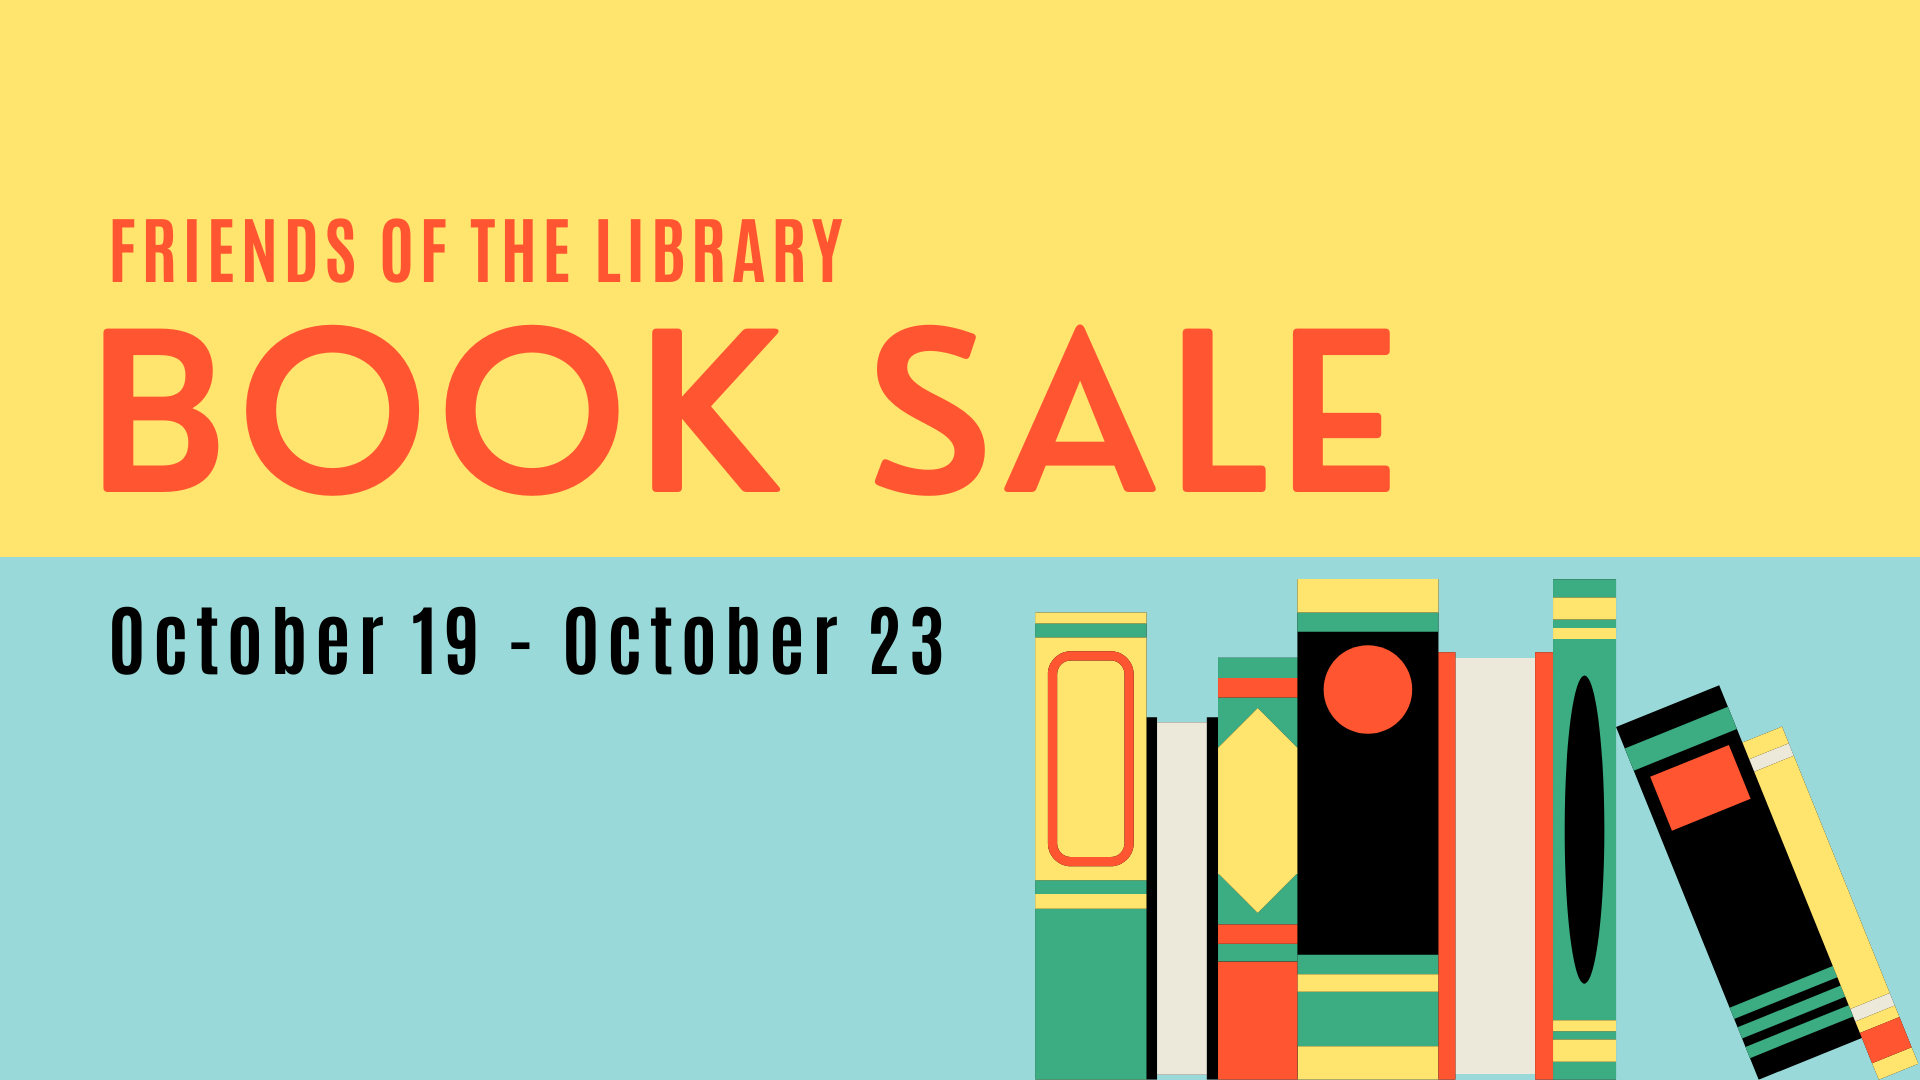 Friends of the Library Book Sale. October 19-October 23